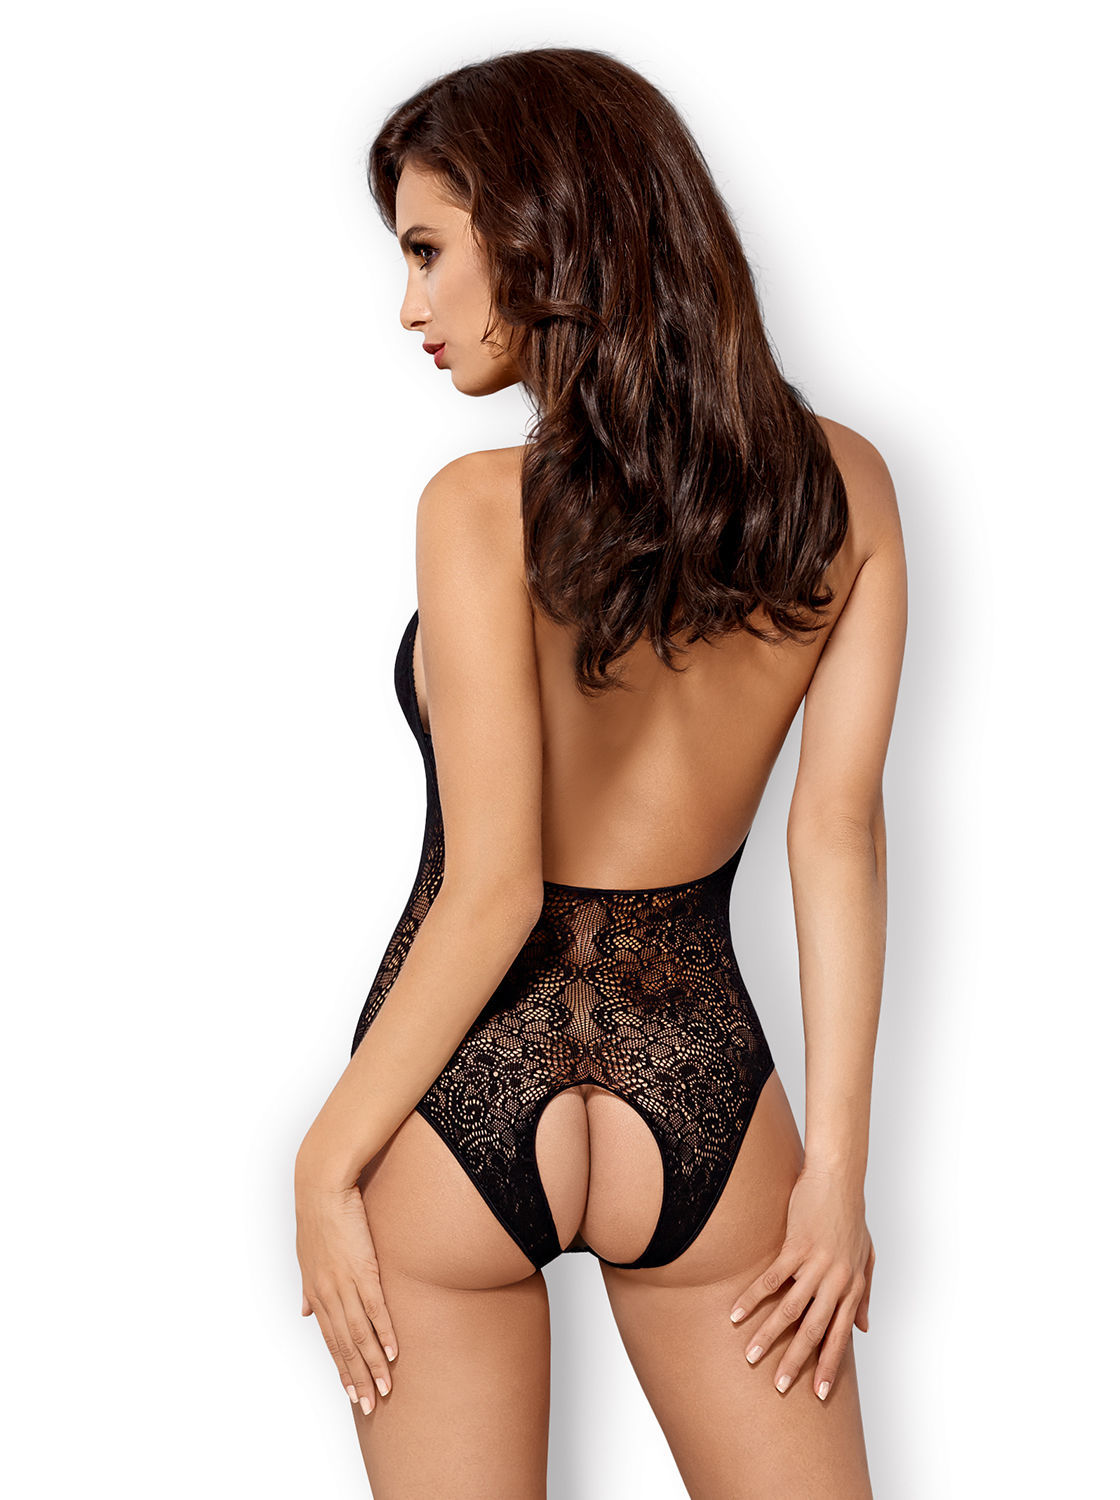 Image de B113 -  Crotchless Knitted Teddy - S/M/L